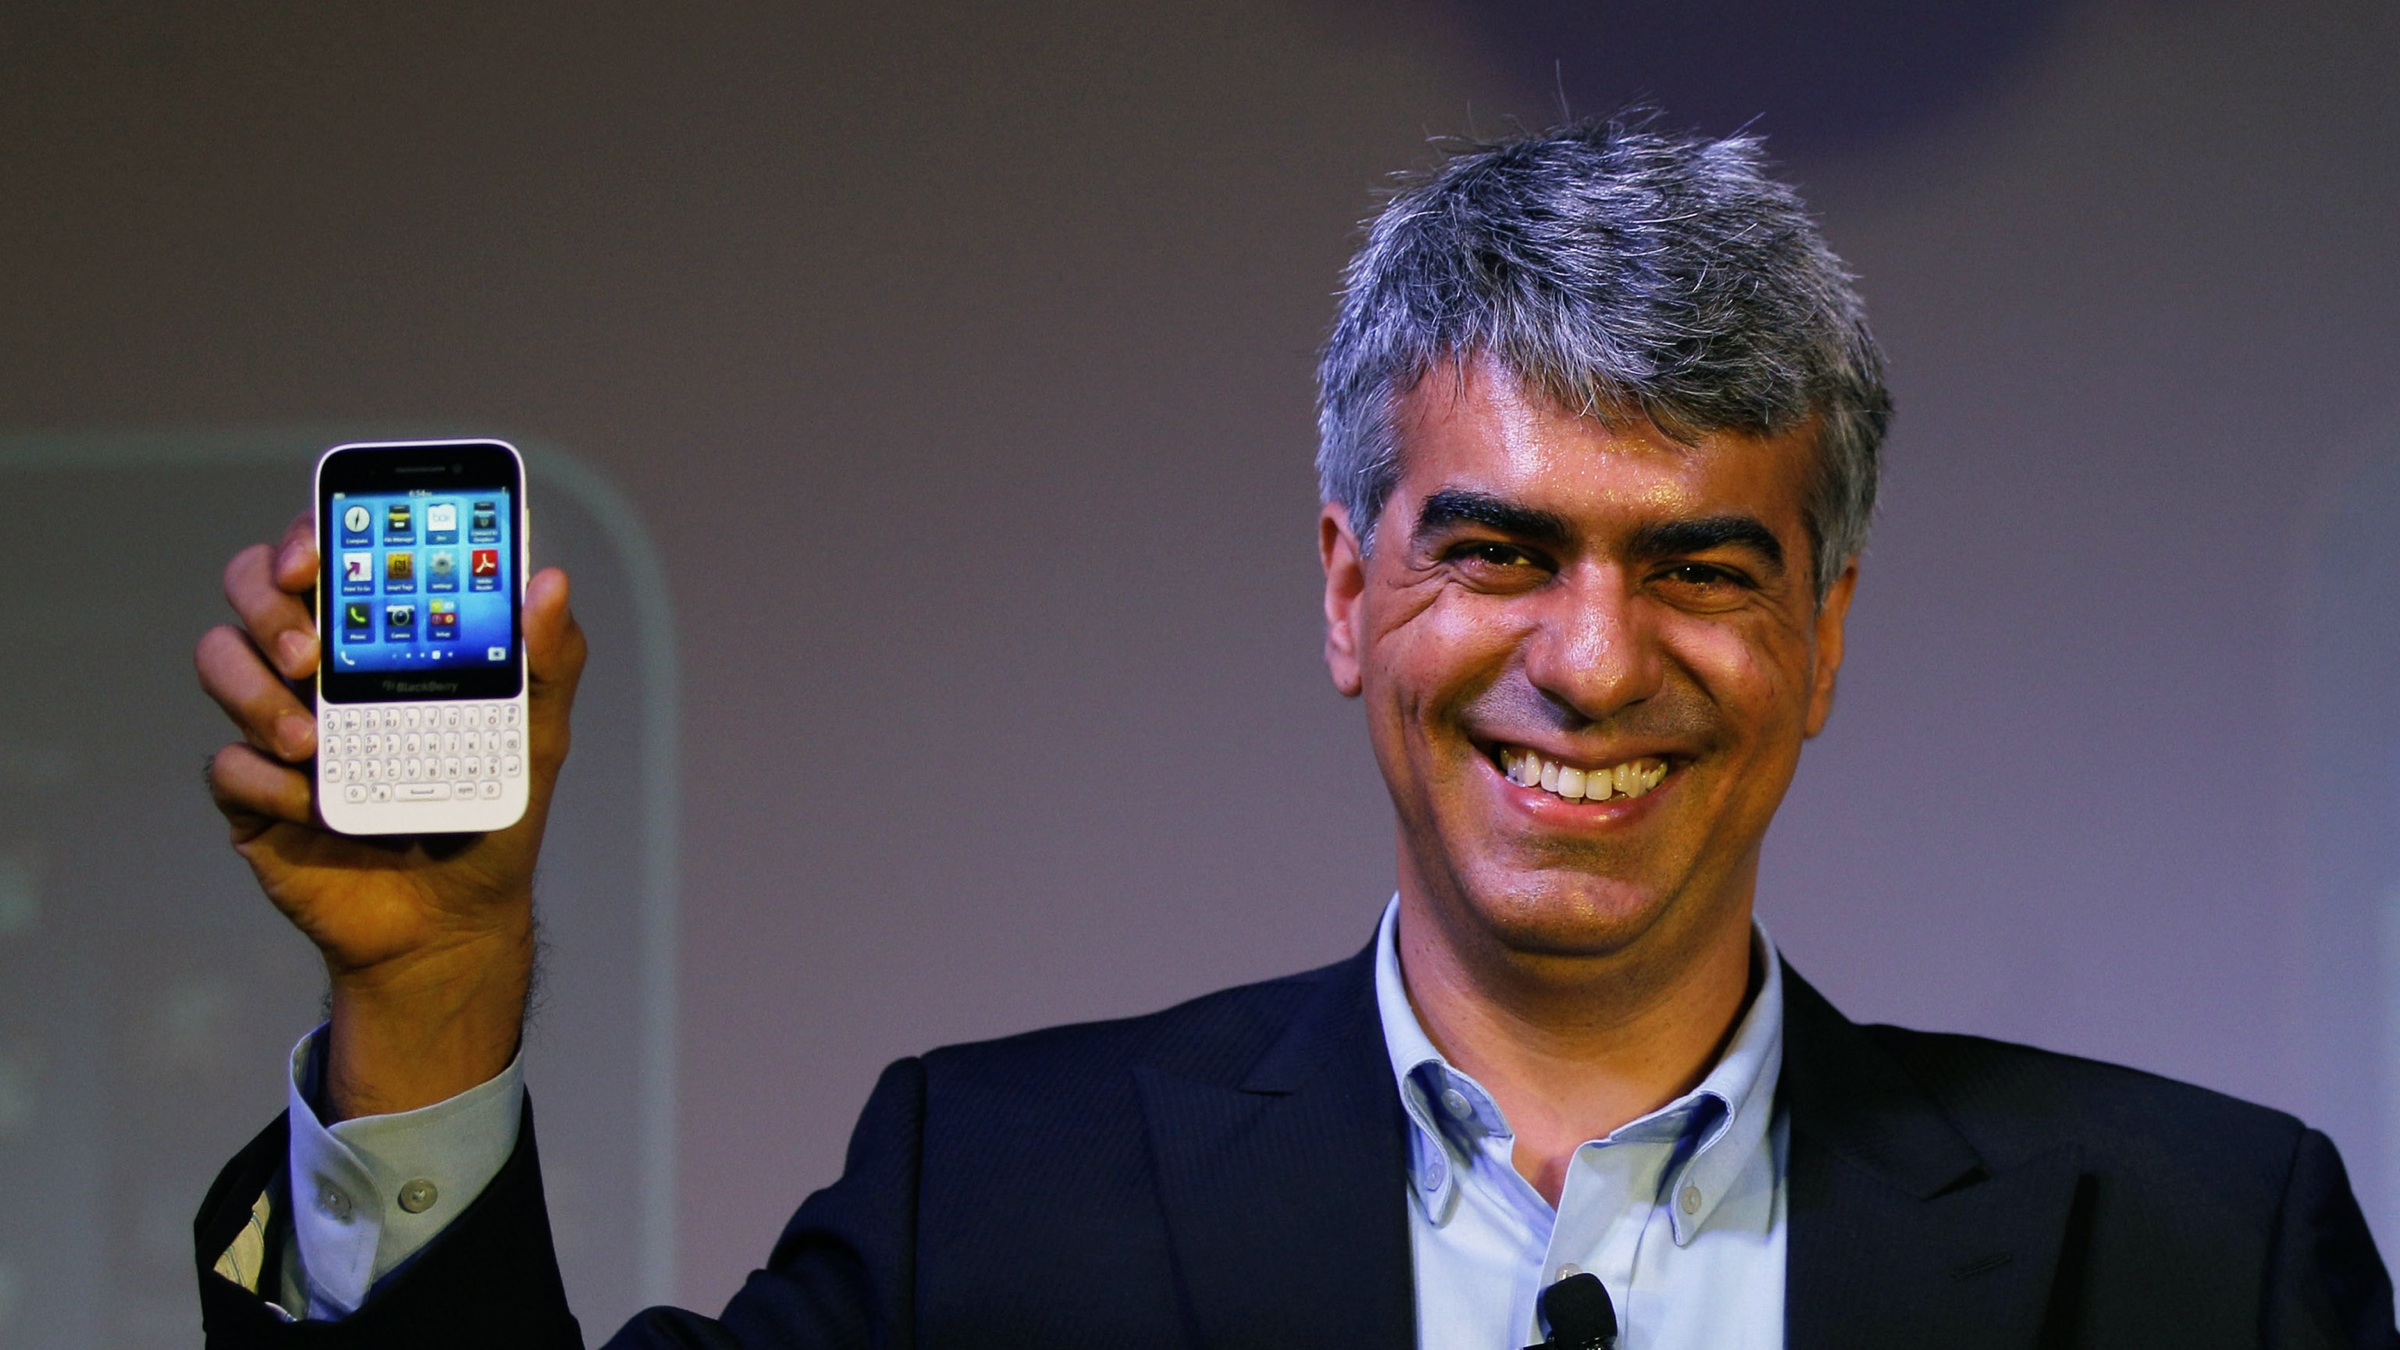 BlackBerry India Managing Director Sunil Lalwani displays BlackBerry Q5 smartphones during its launch in New Delhi, India, Tuesday, July 16, 2013. BlackBerry Q5 is priced at Rupees 24,990 ($416). (AP Photo/Altaf Qadri)